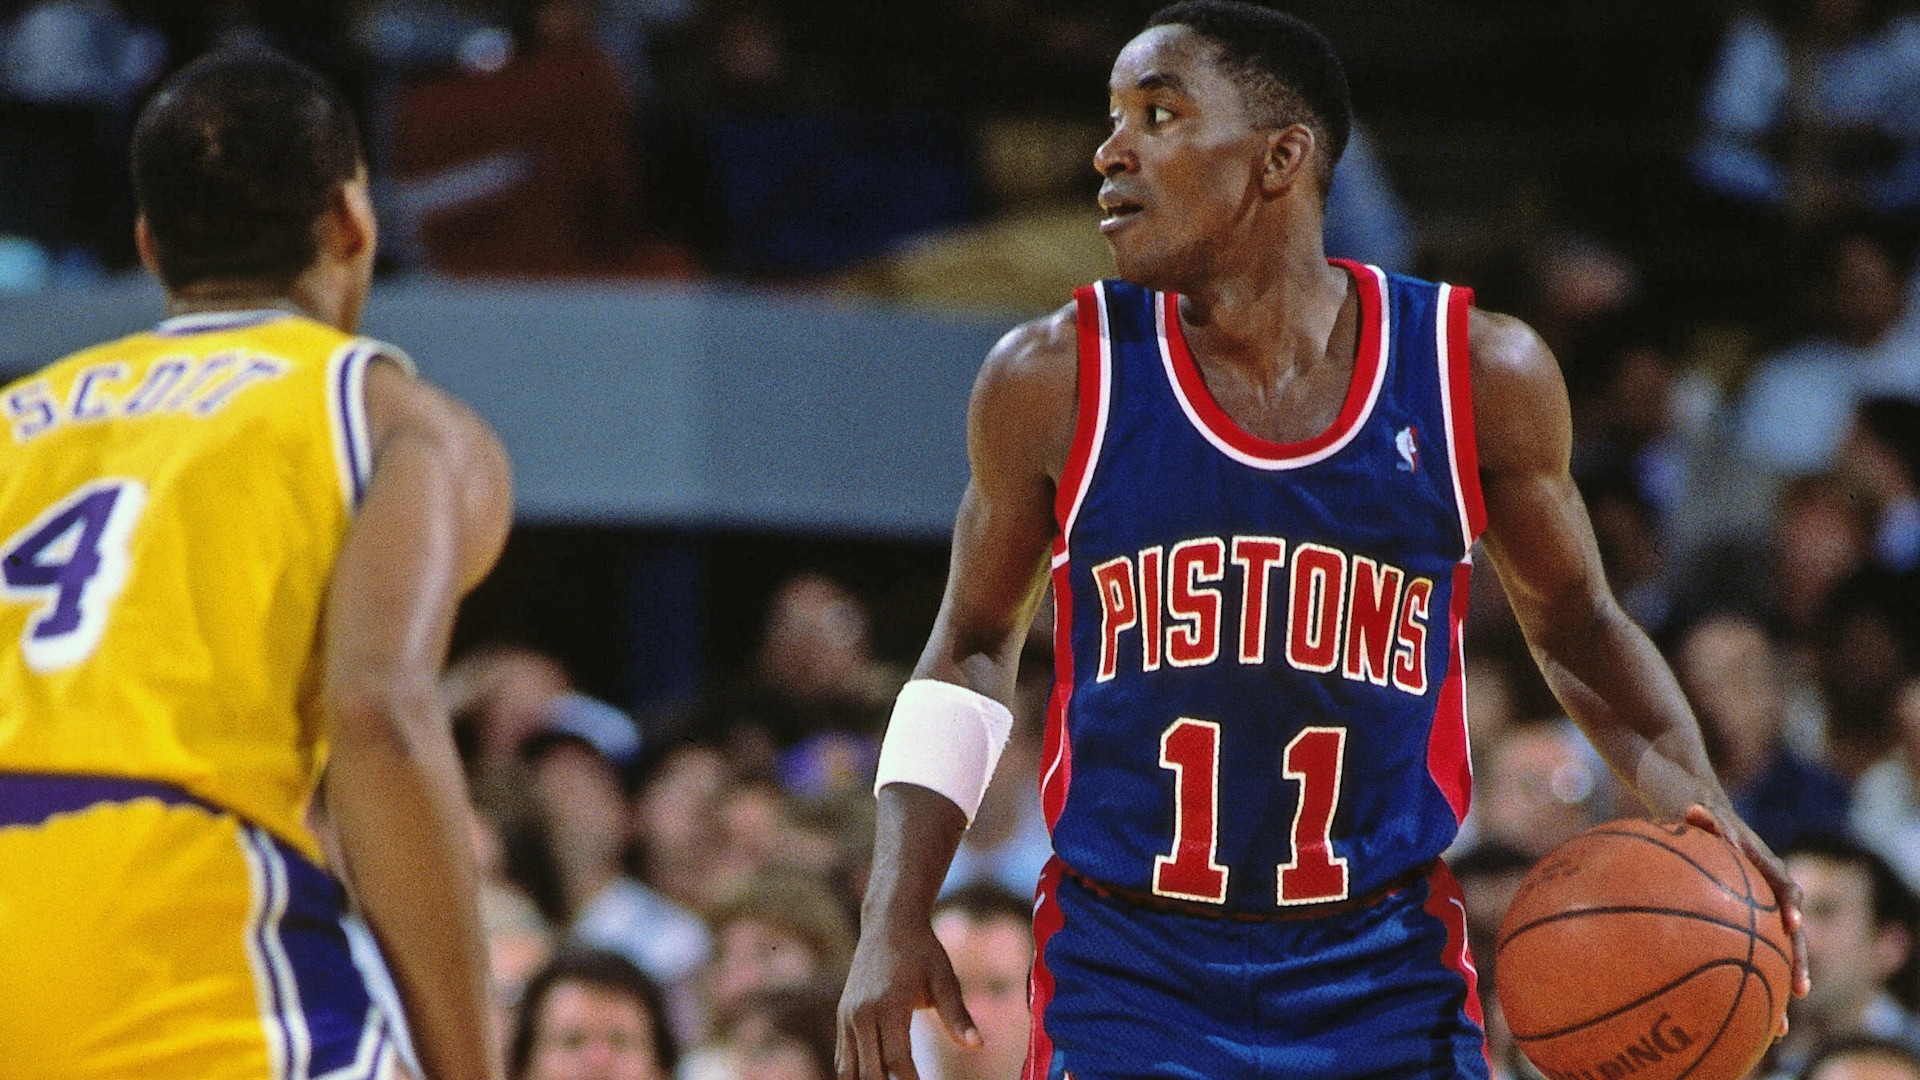 Top Finals Moments: Isiah Thomas scores 25 on a bad ankle